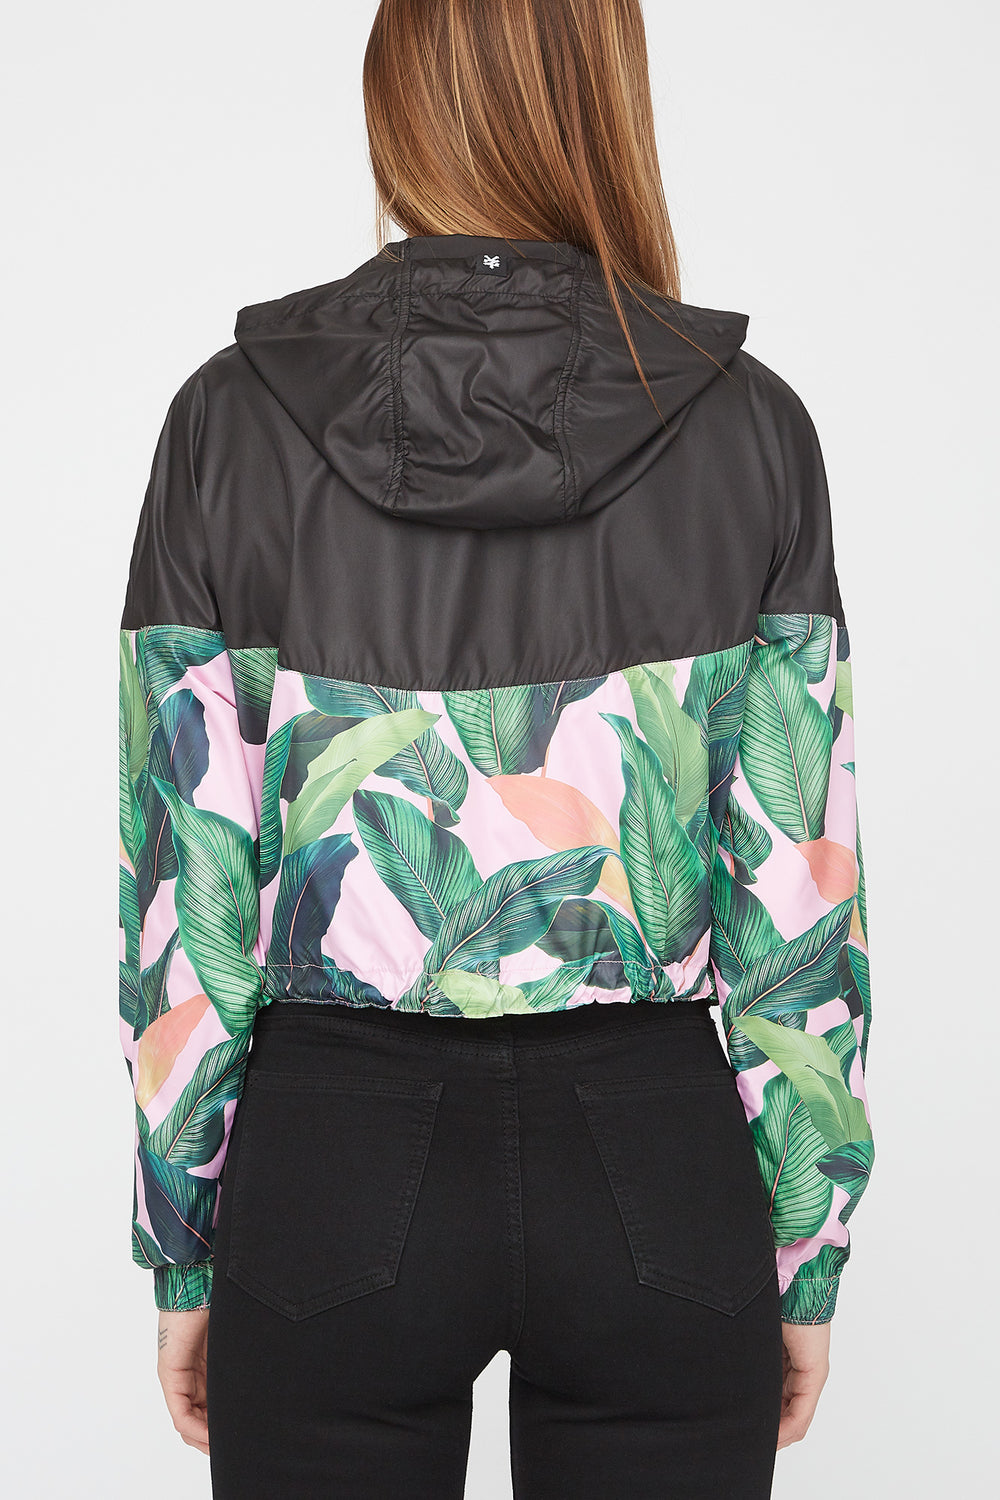 Manteau Court Imprimé Tropical Zoo York Femme Noir Total